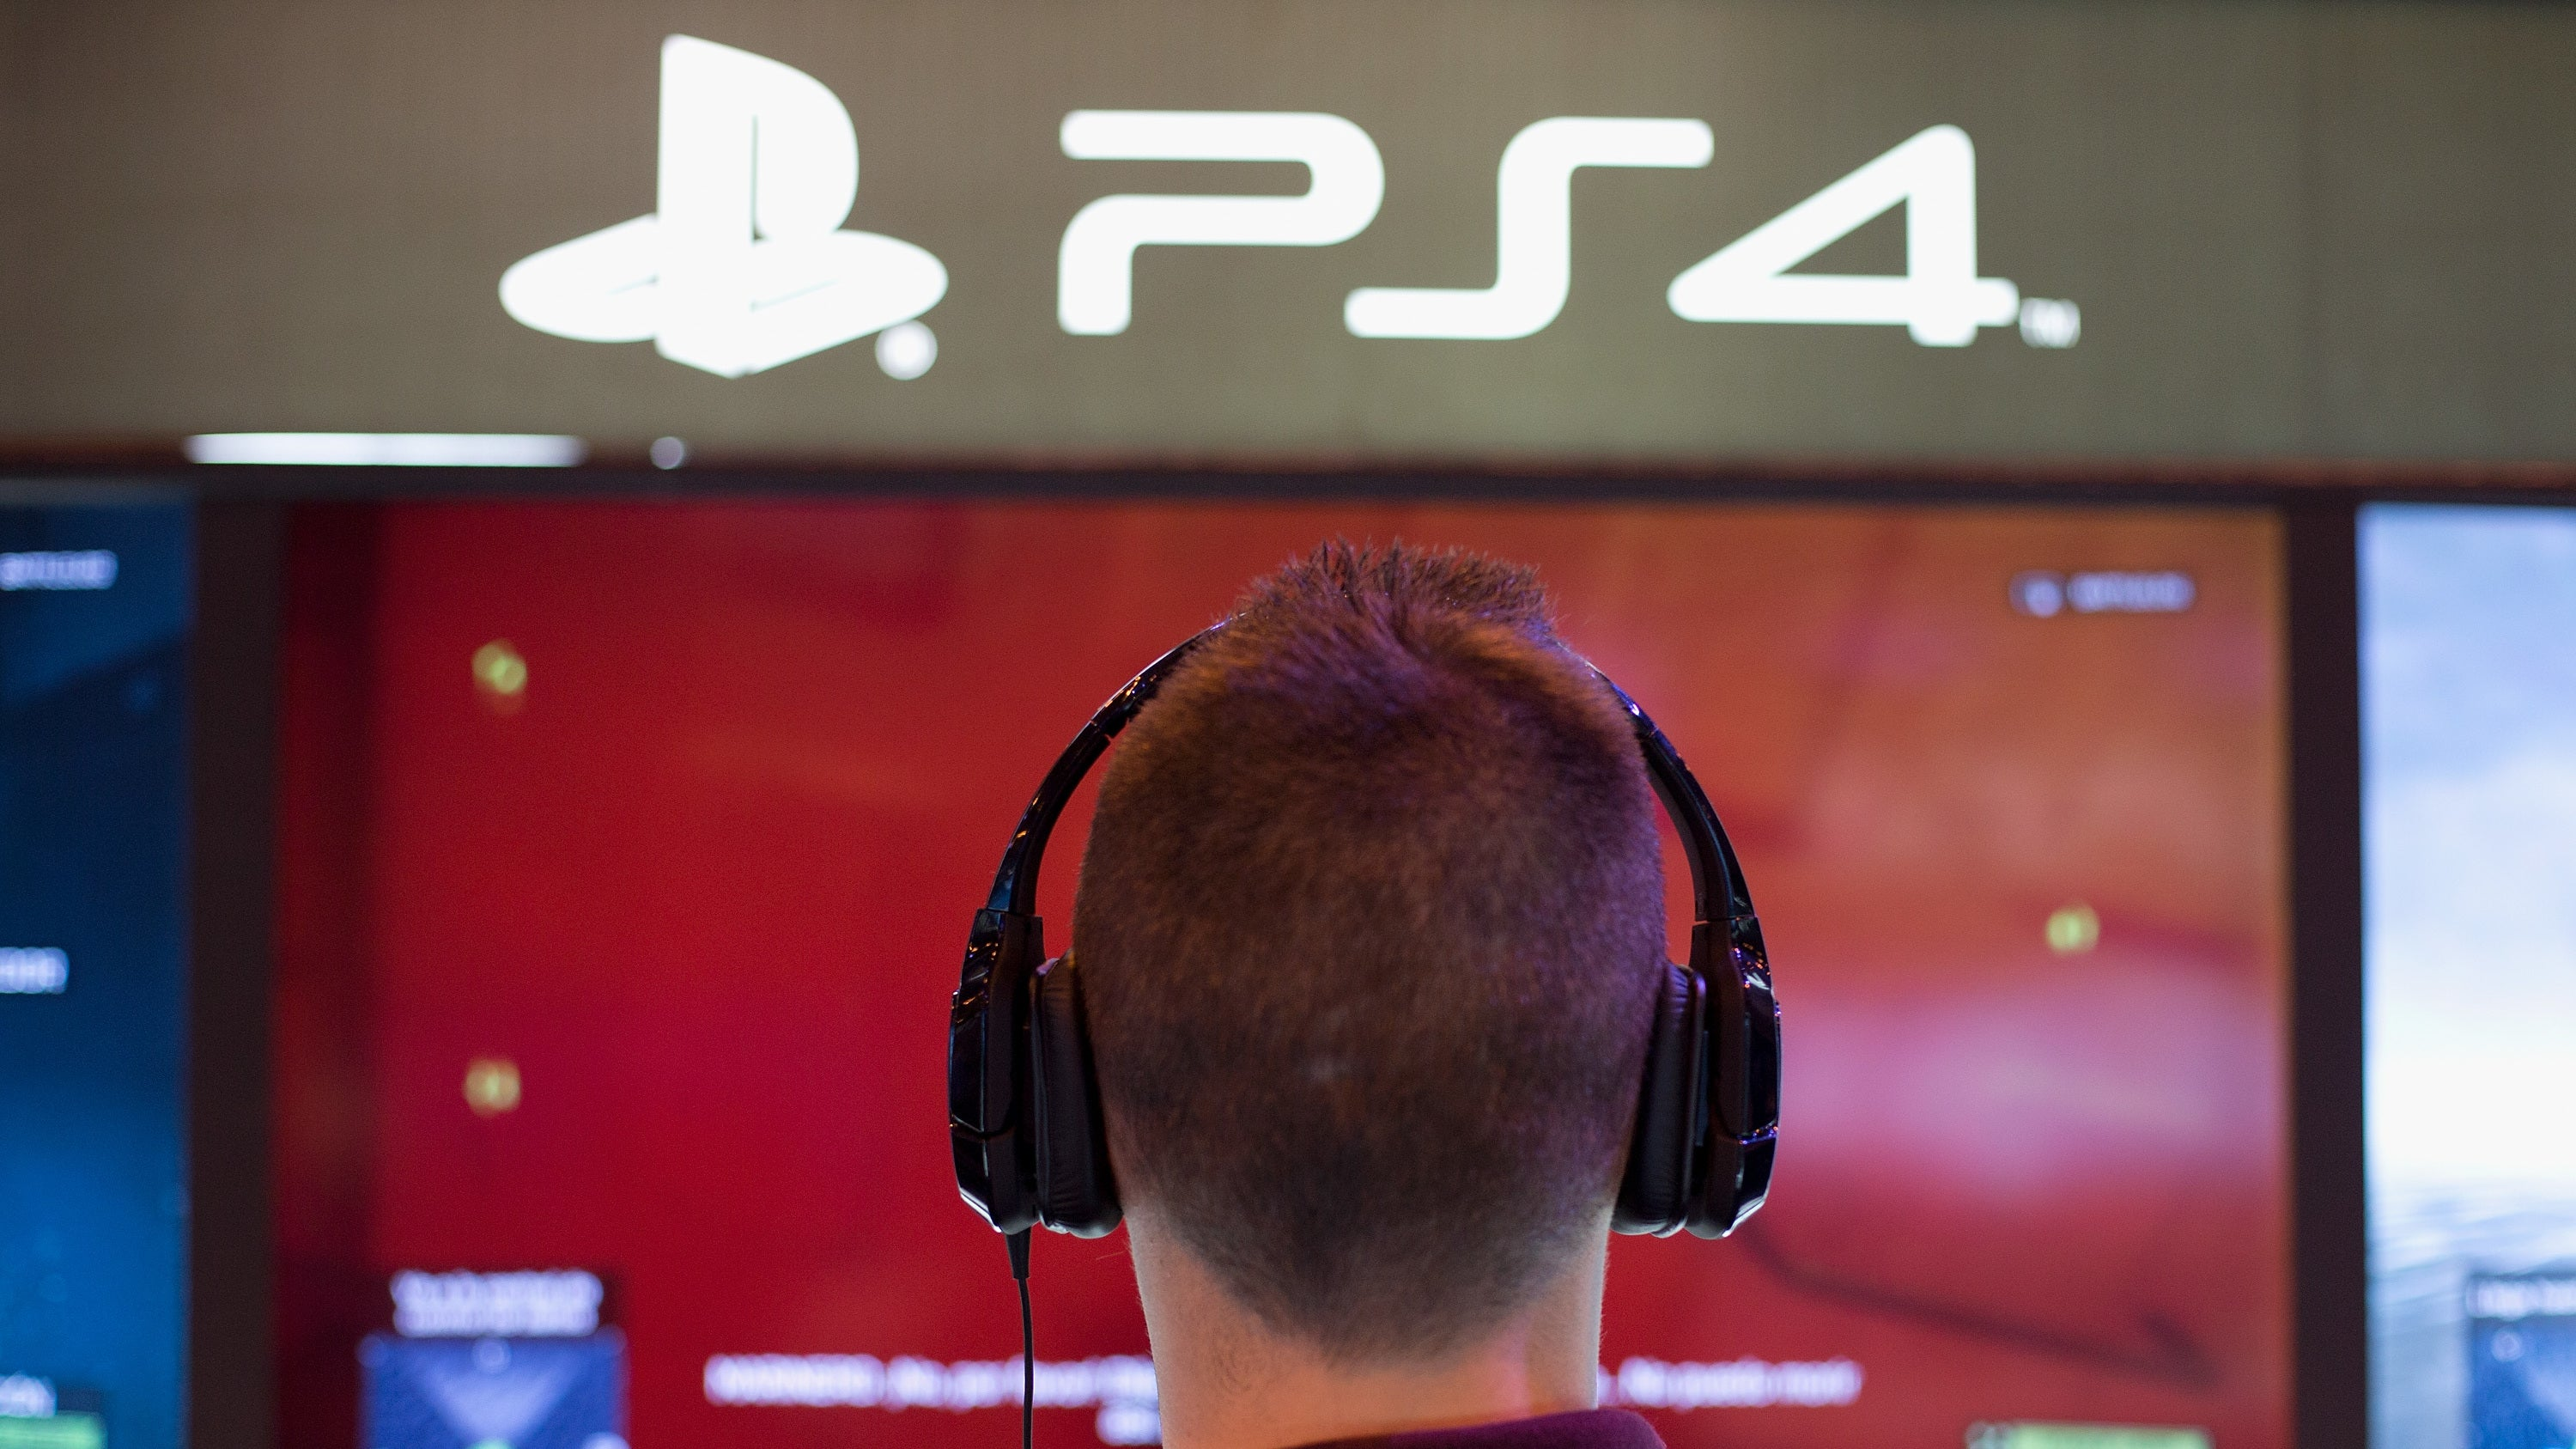 You Can Now Change Your PSN Online ID — But There Are A Few Things You Need To Know